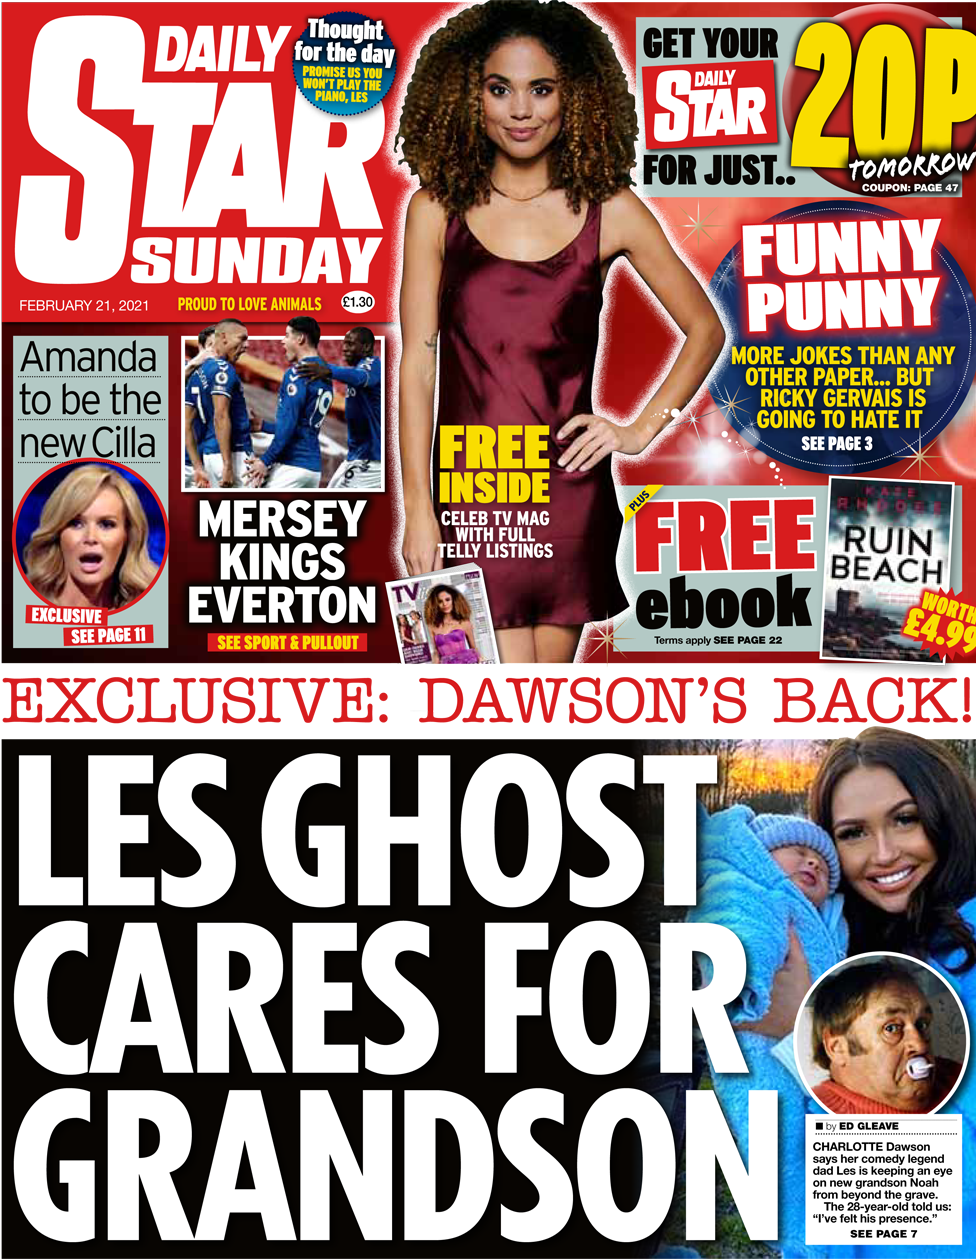 The Daily Star Sunday front page 21 February 2021